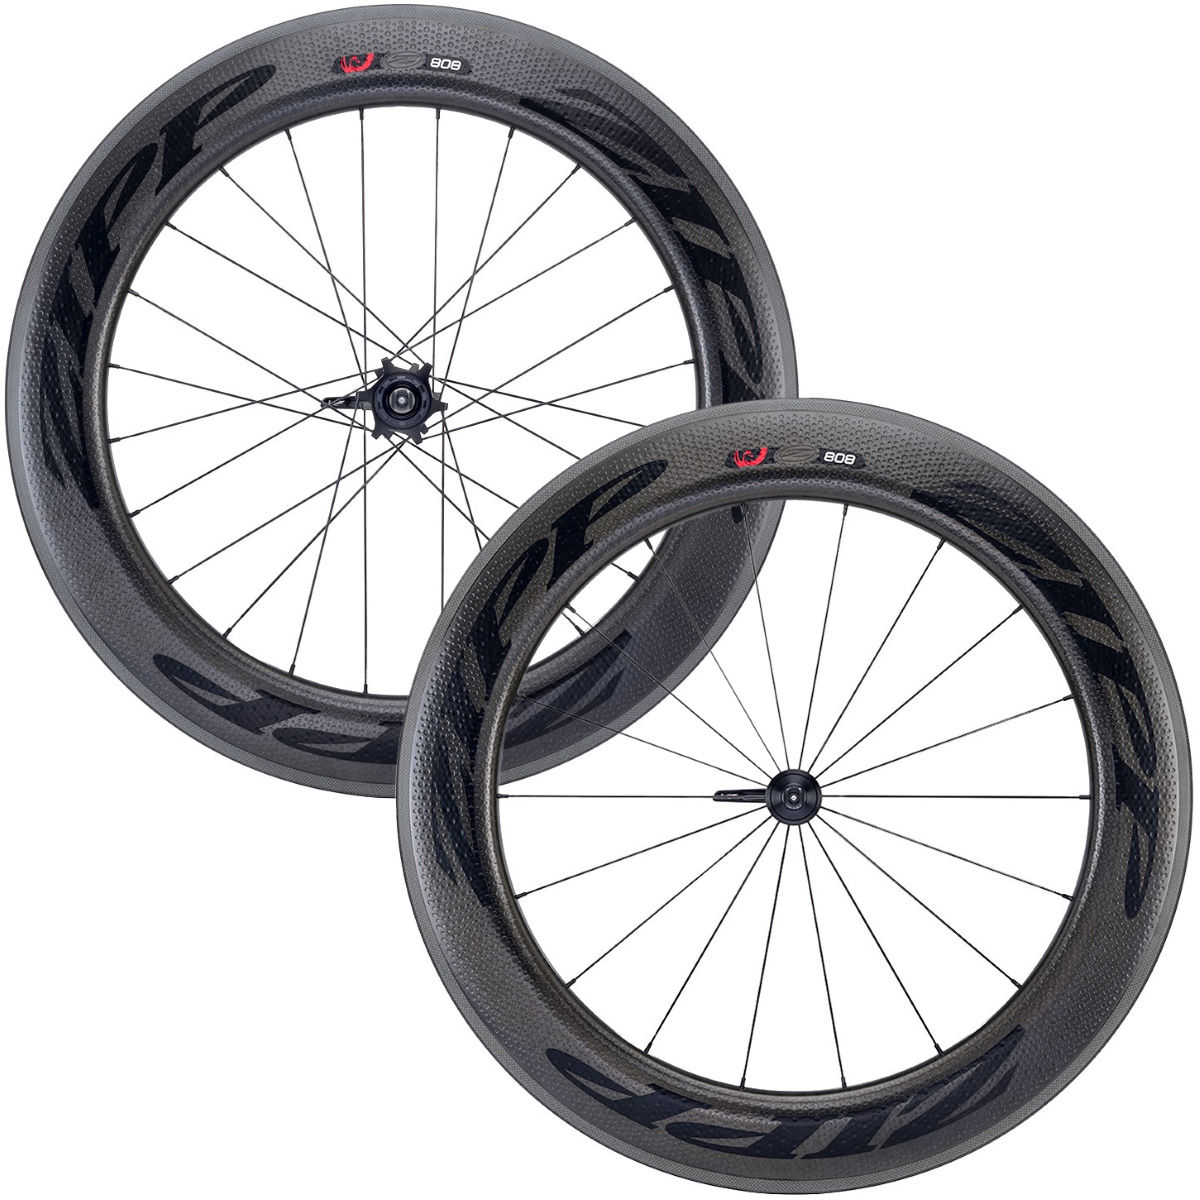 Set of wheels Zipp 808 Firecrest for cover (Shimano, carbon) - Competition wheels